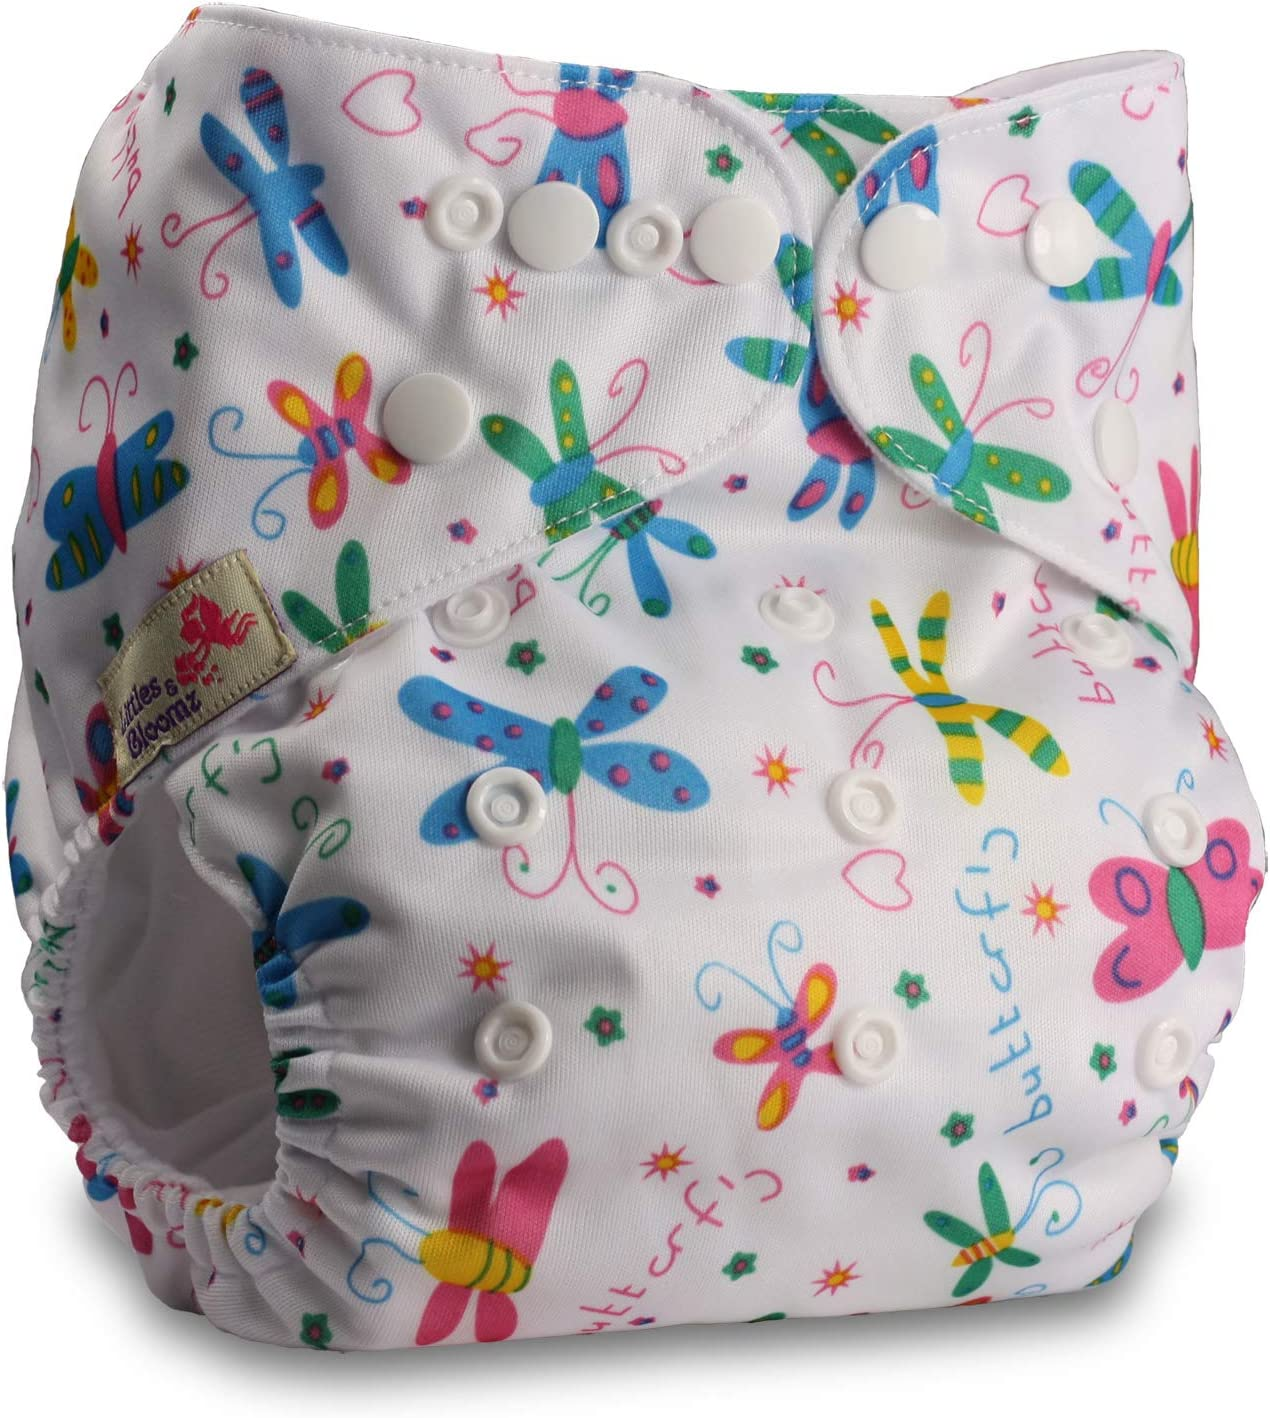 Fastener: Popper Littles /& Bloomz Pattern 35 Set of 1 with 1 Microfibre Insert Reusable Pocket Cloth Nappy